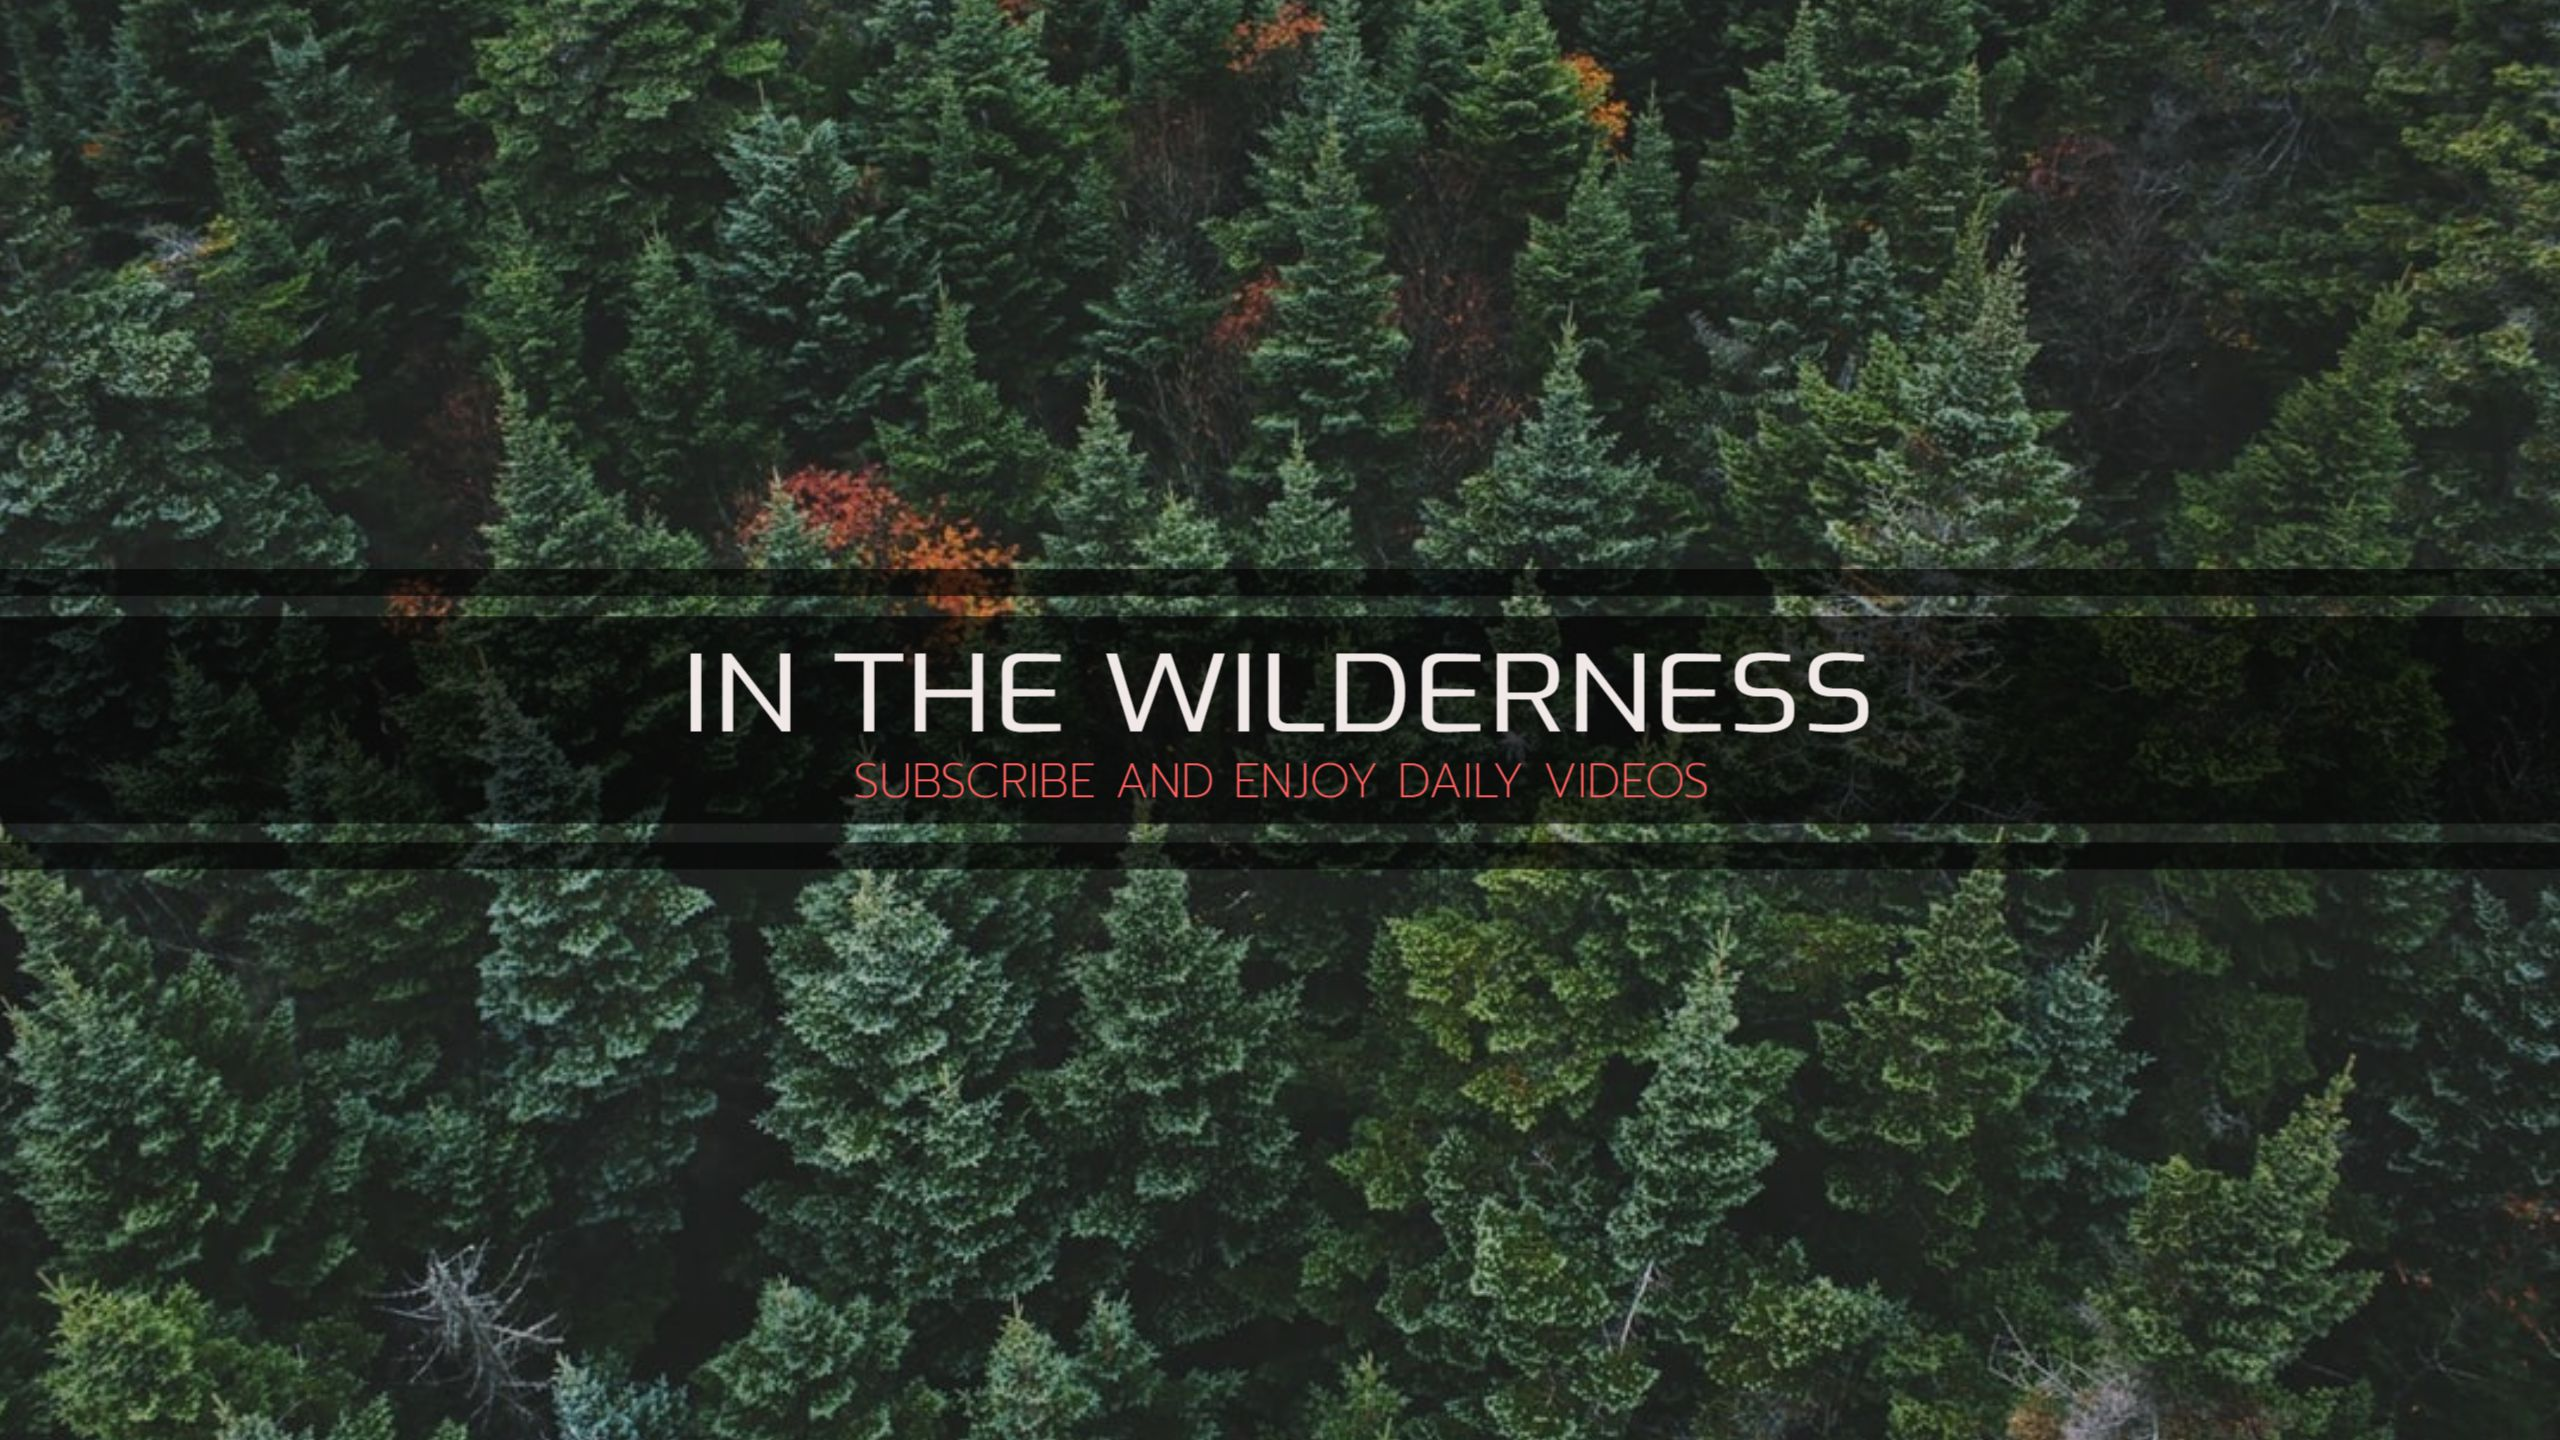 Wilderness and Adventure Youtube Banner